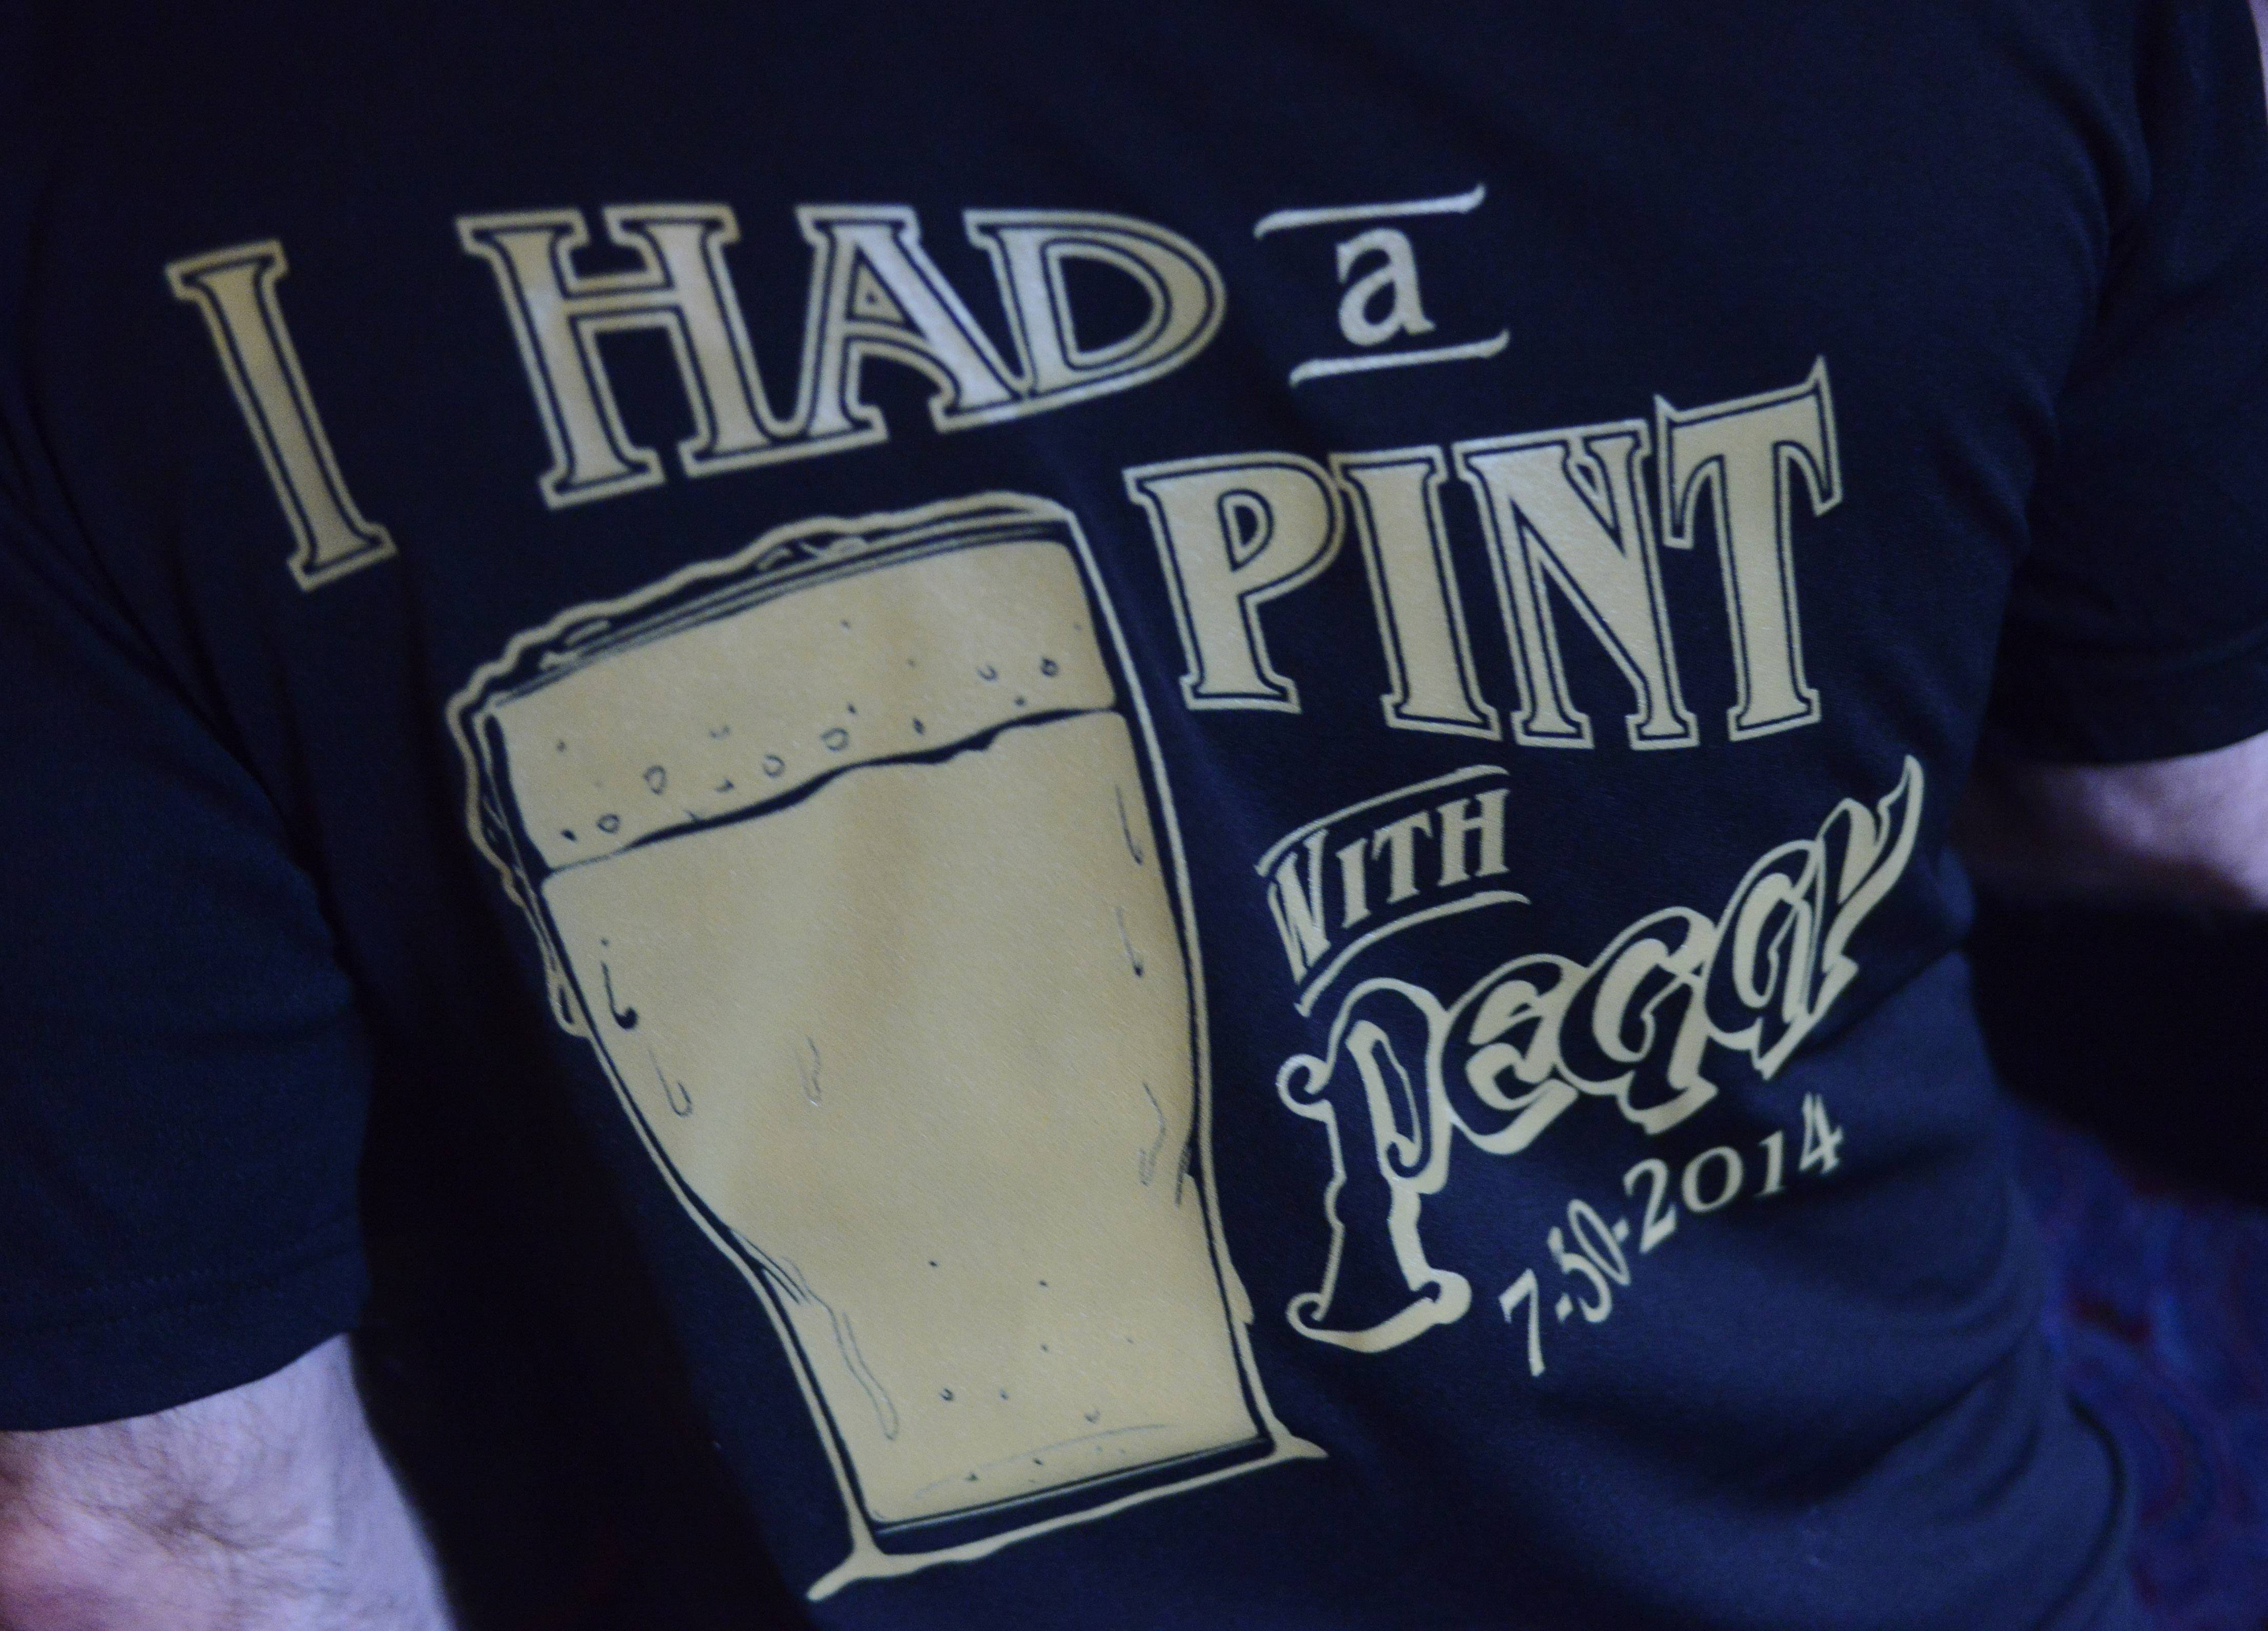 """I Had a Pint With Peggy"" T-shirts were being distributed during a visit Wednesday night from by Peggy Kinnane, 75, namesake of Peggy Kinnane's Irish Restaurant & Pub in Arlington Heights."